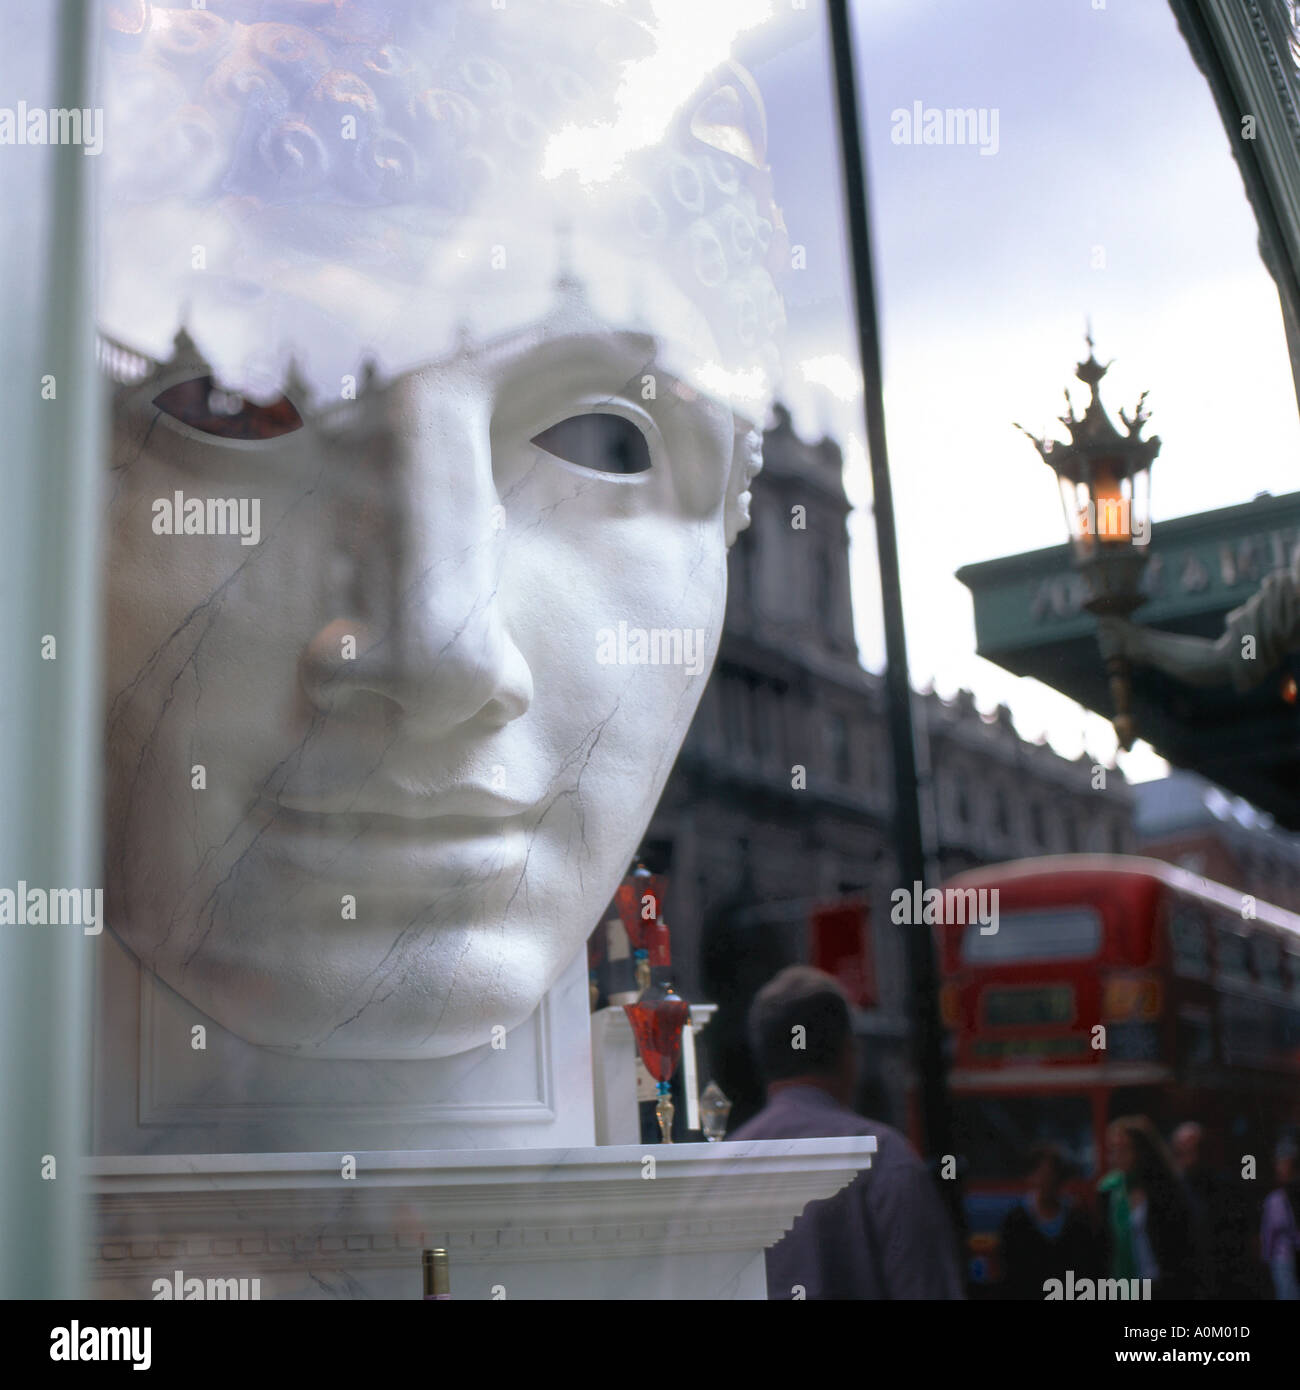 Reflection of a Greek God face in a London shop window, Picadilly, England UK - Stock Image